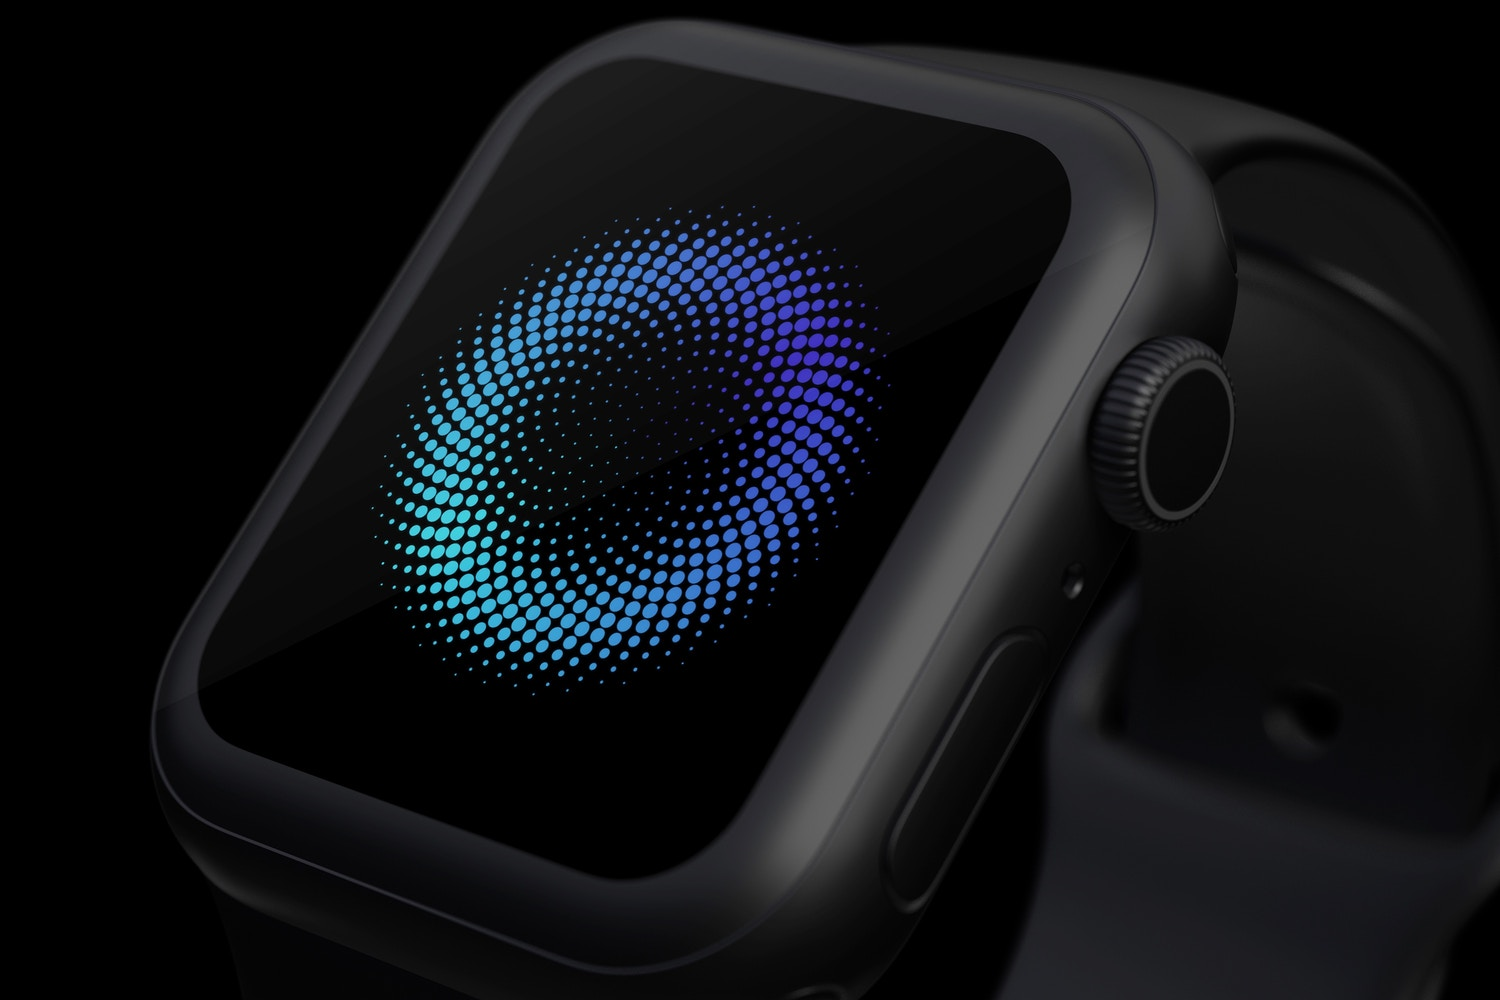 Clay Apple Watch Series 4 (44mm) Mockup, Close up (3) by Original Mockups on Original Mockups